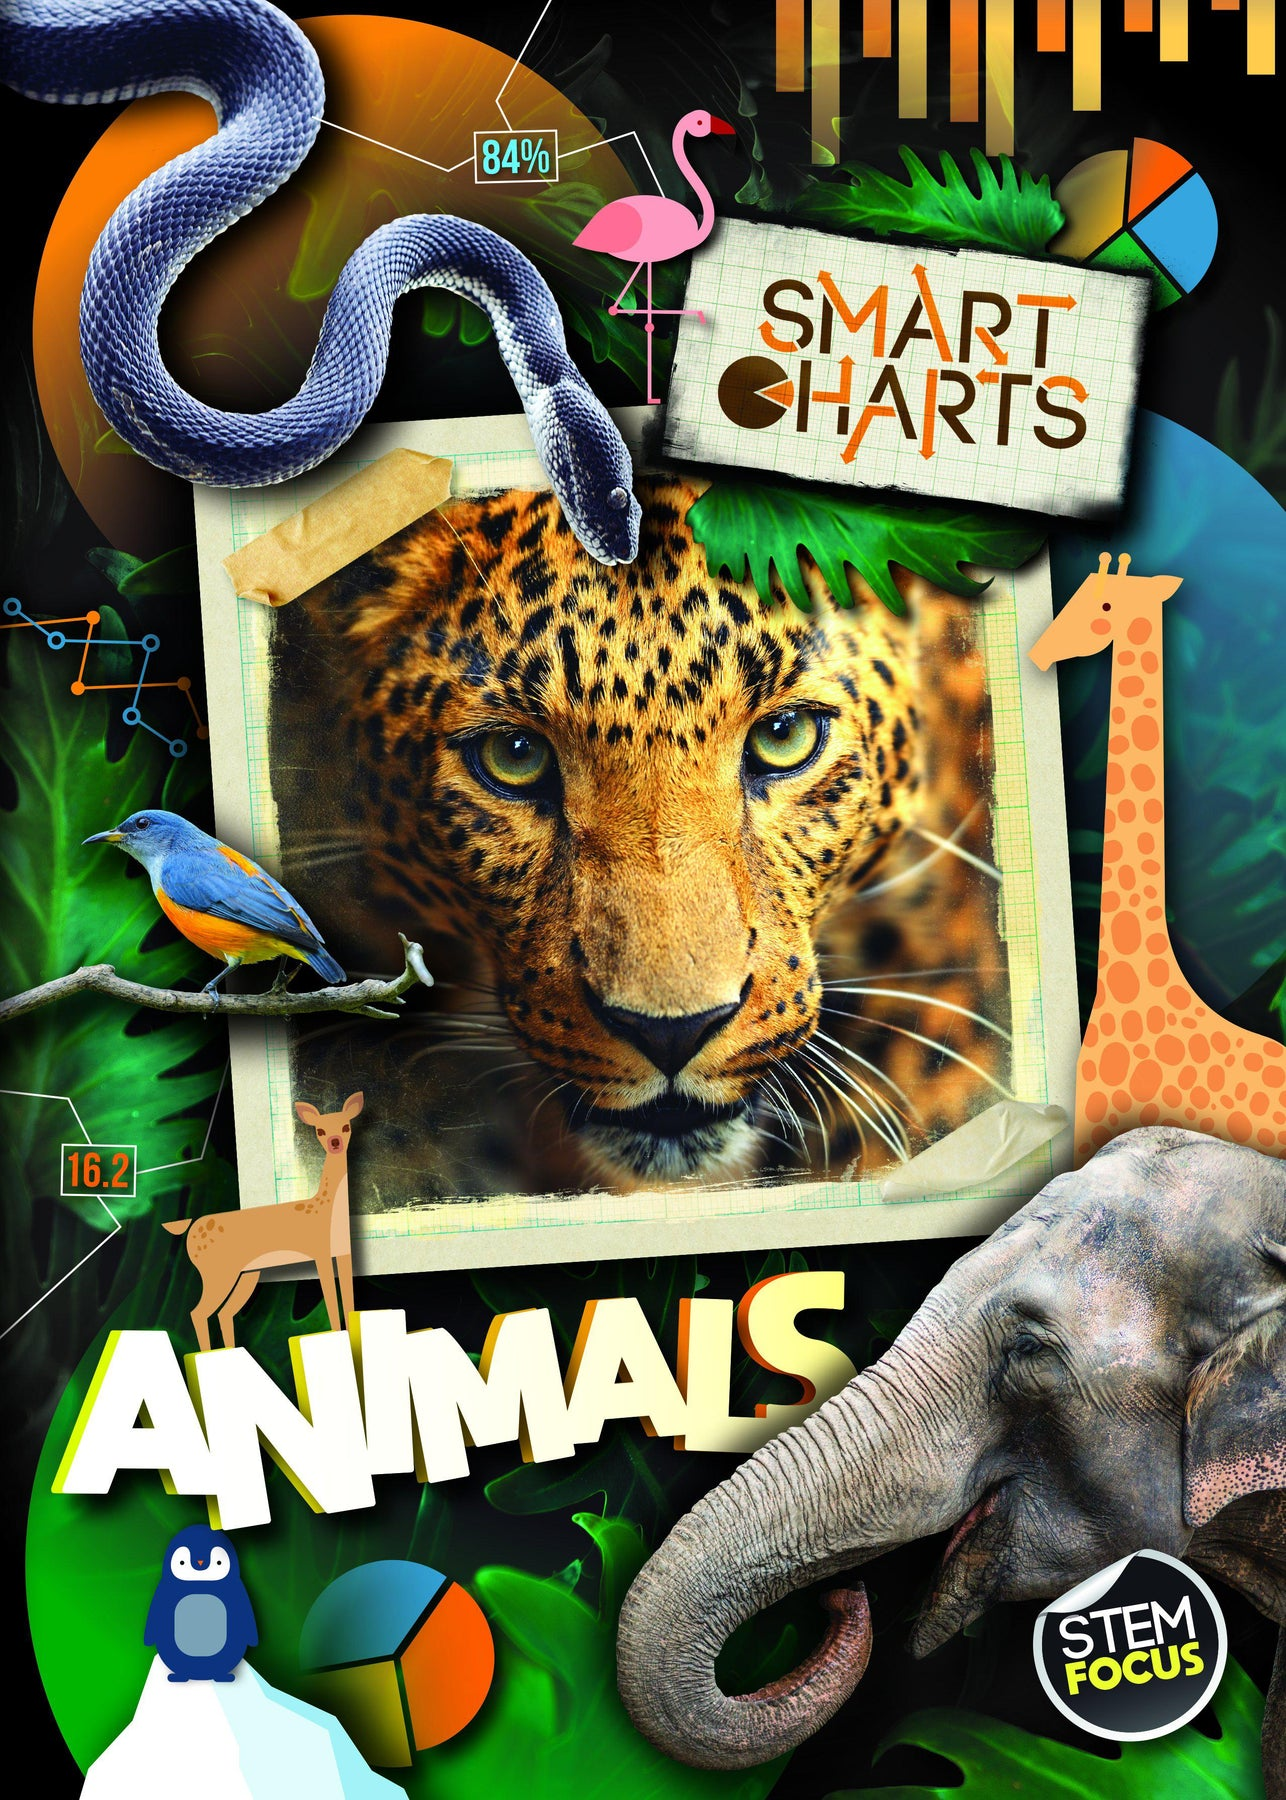 Smart Charts Book, Animal Books, Animal, Book, Children's Books, BookLife Publishing, BookLife